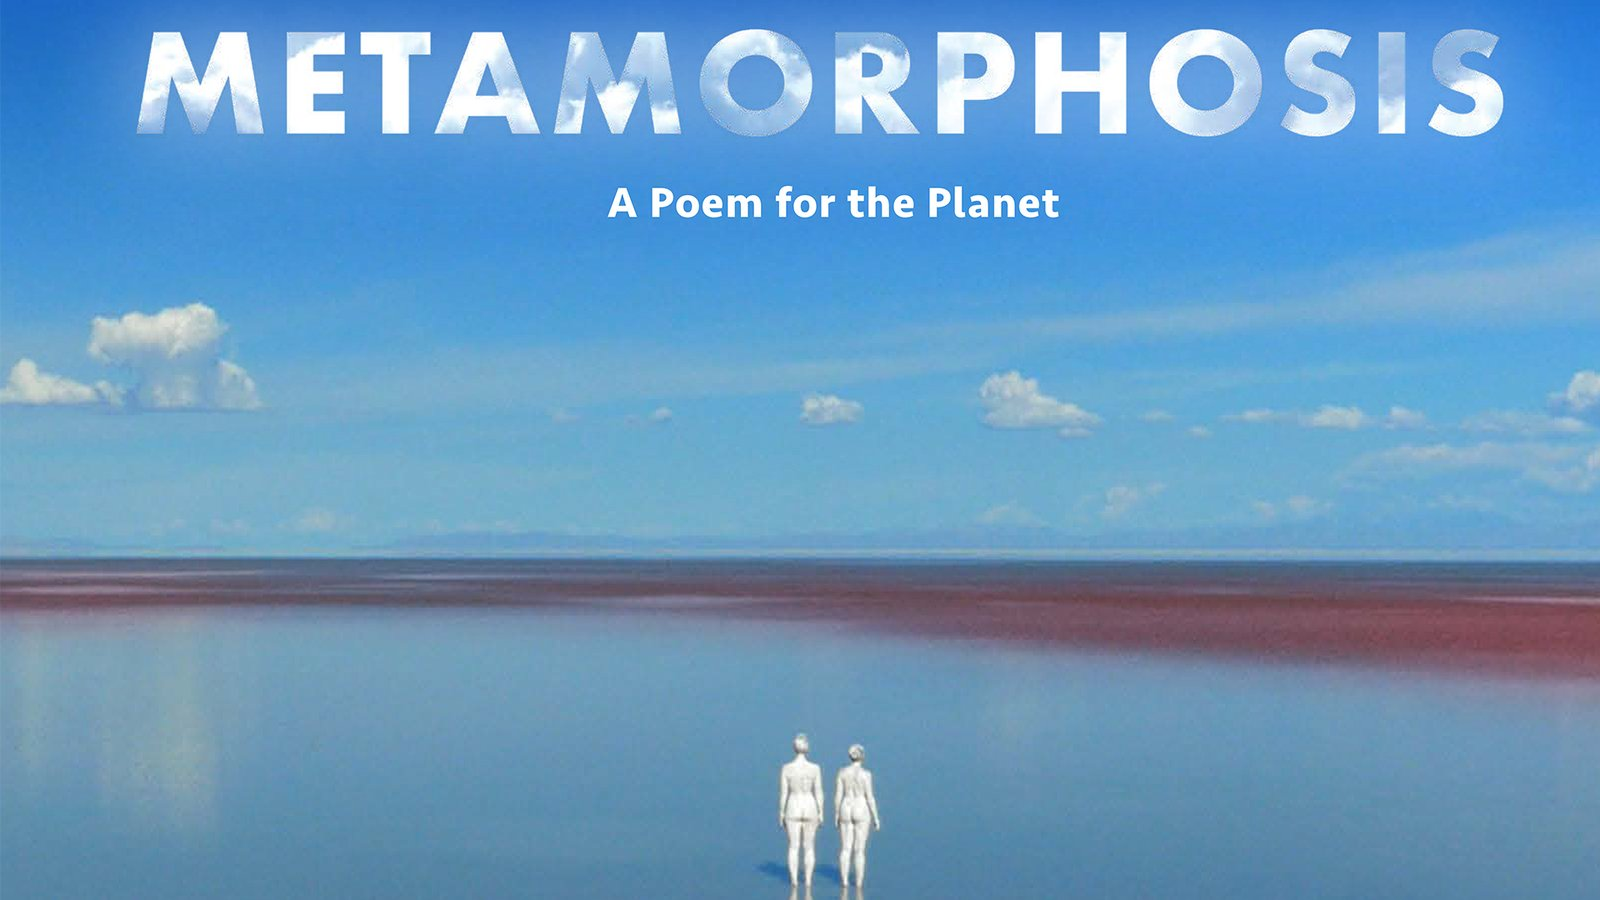 Metamorphosis - A Poem for the Planet